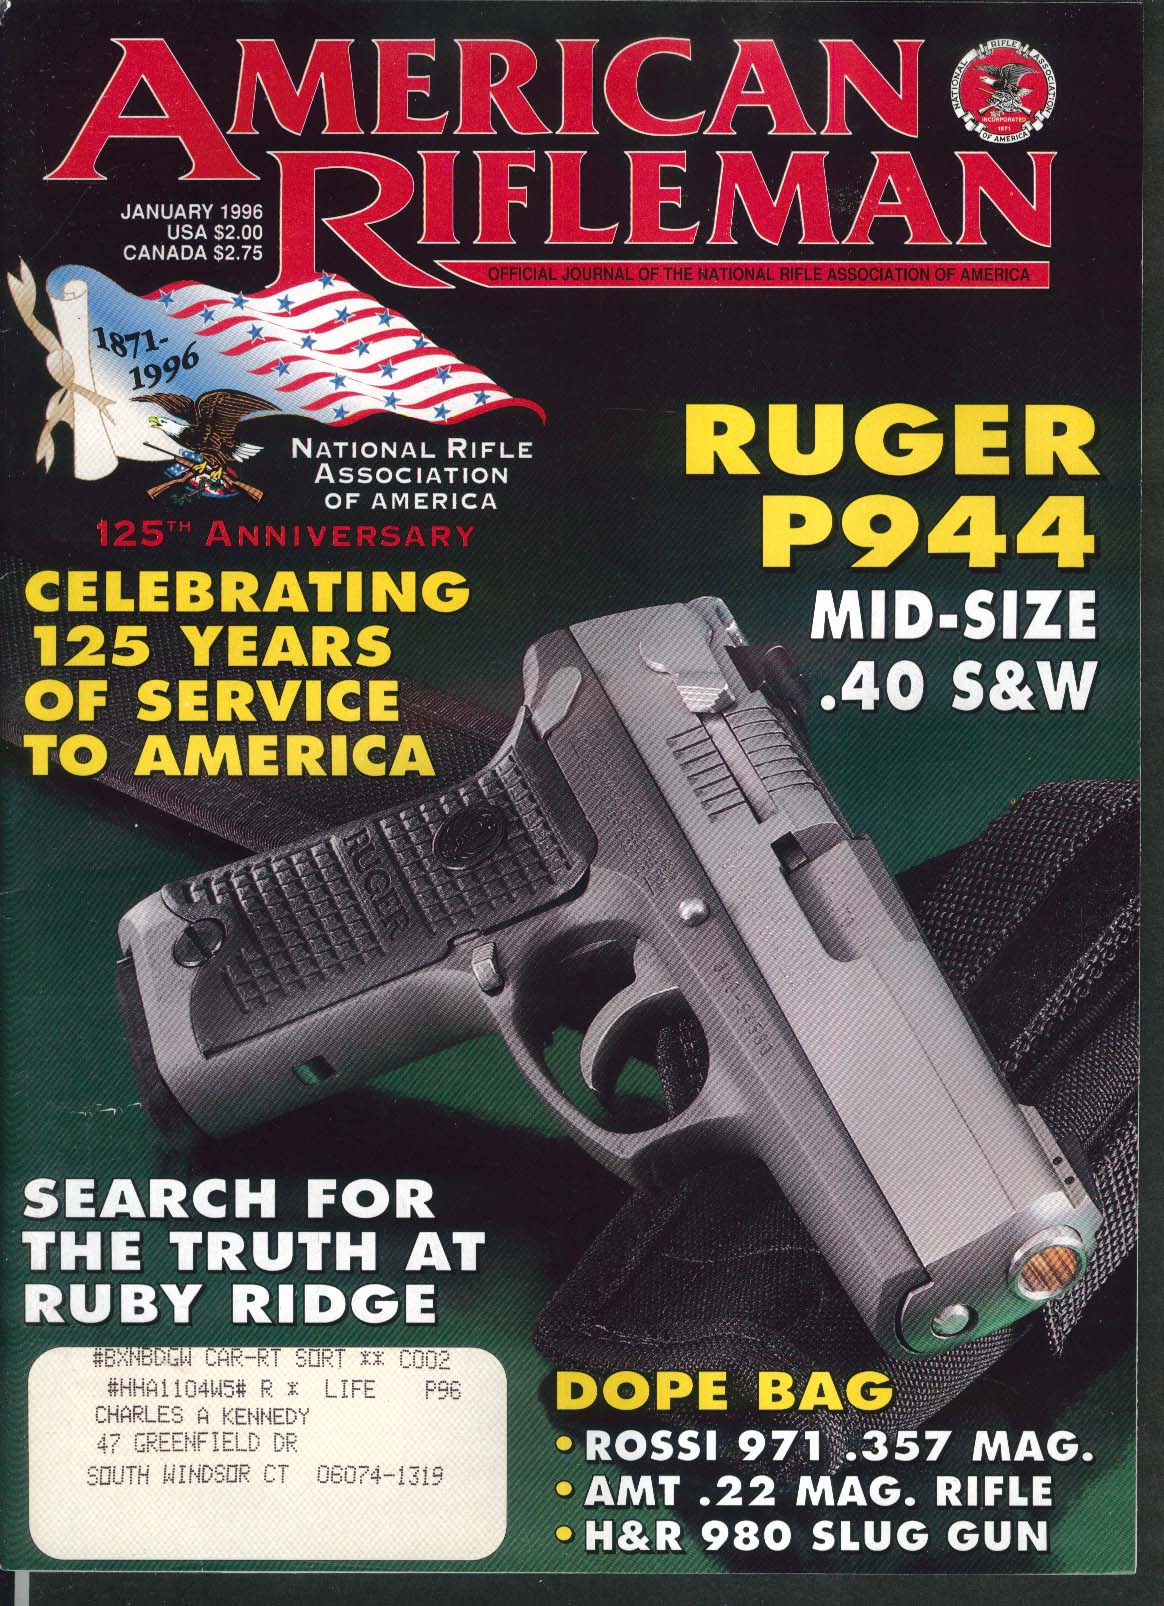 AMERICAN RIFLEMAN Ruger P944 Browning T-Bolt Rifle 1 1996